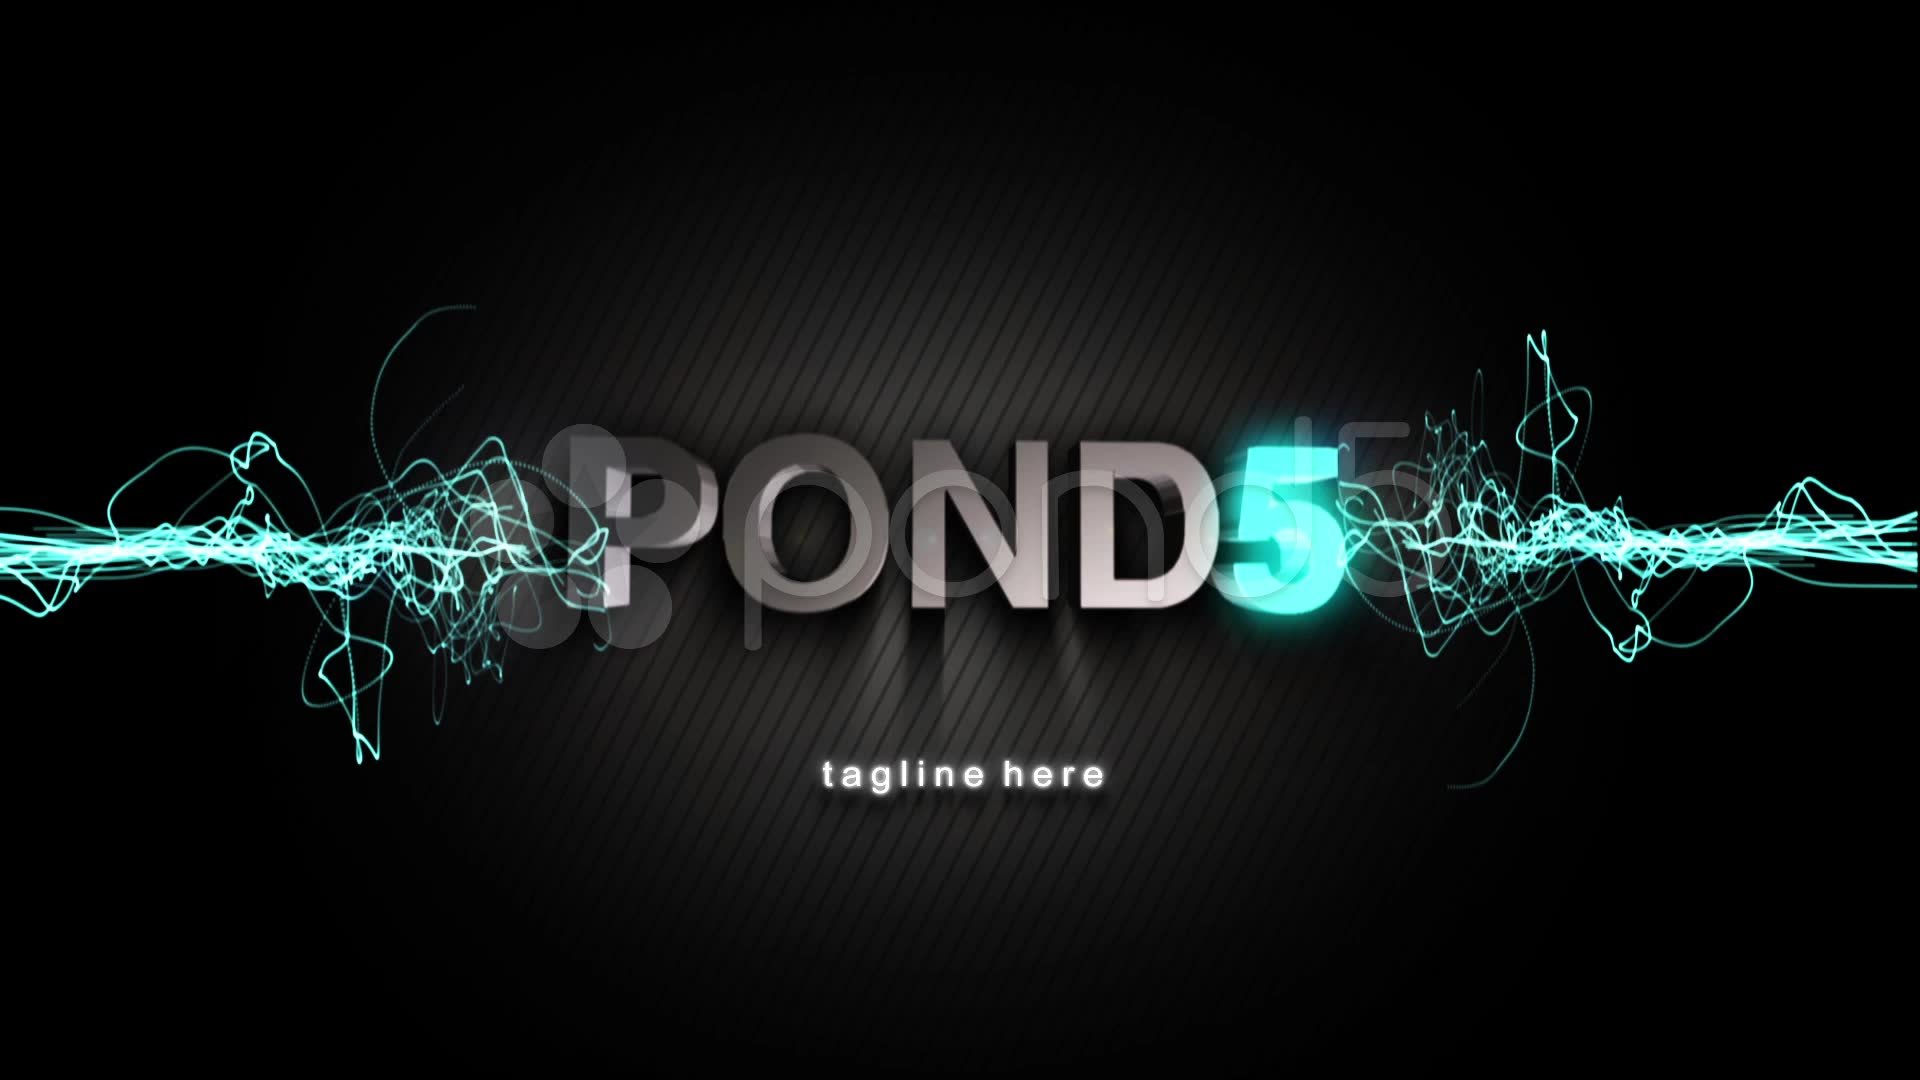 After Effects Project - Pond5 Logo Reveal With Strings Particles 22709823